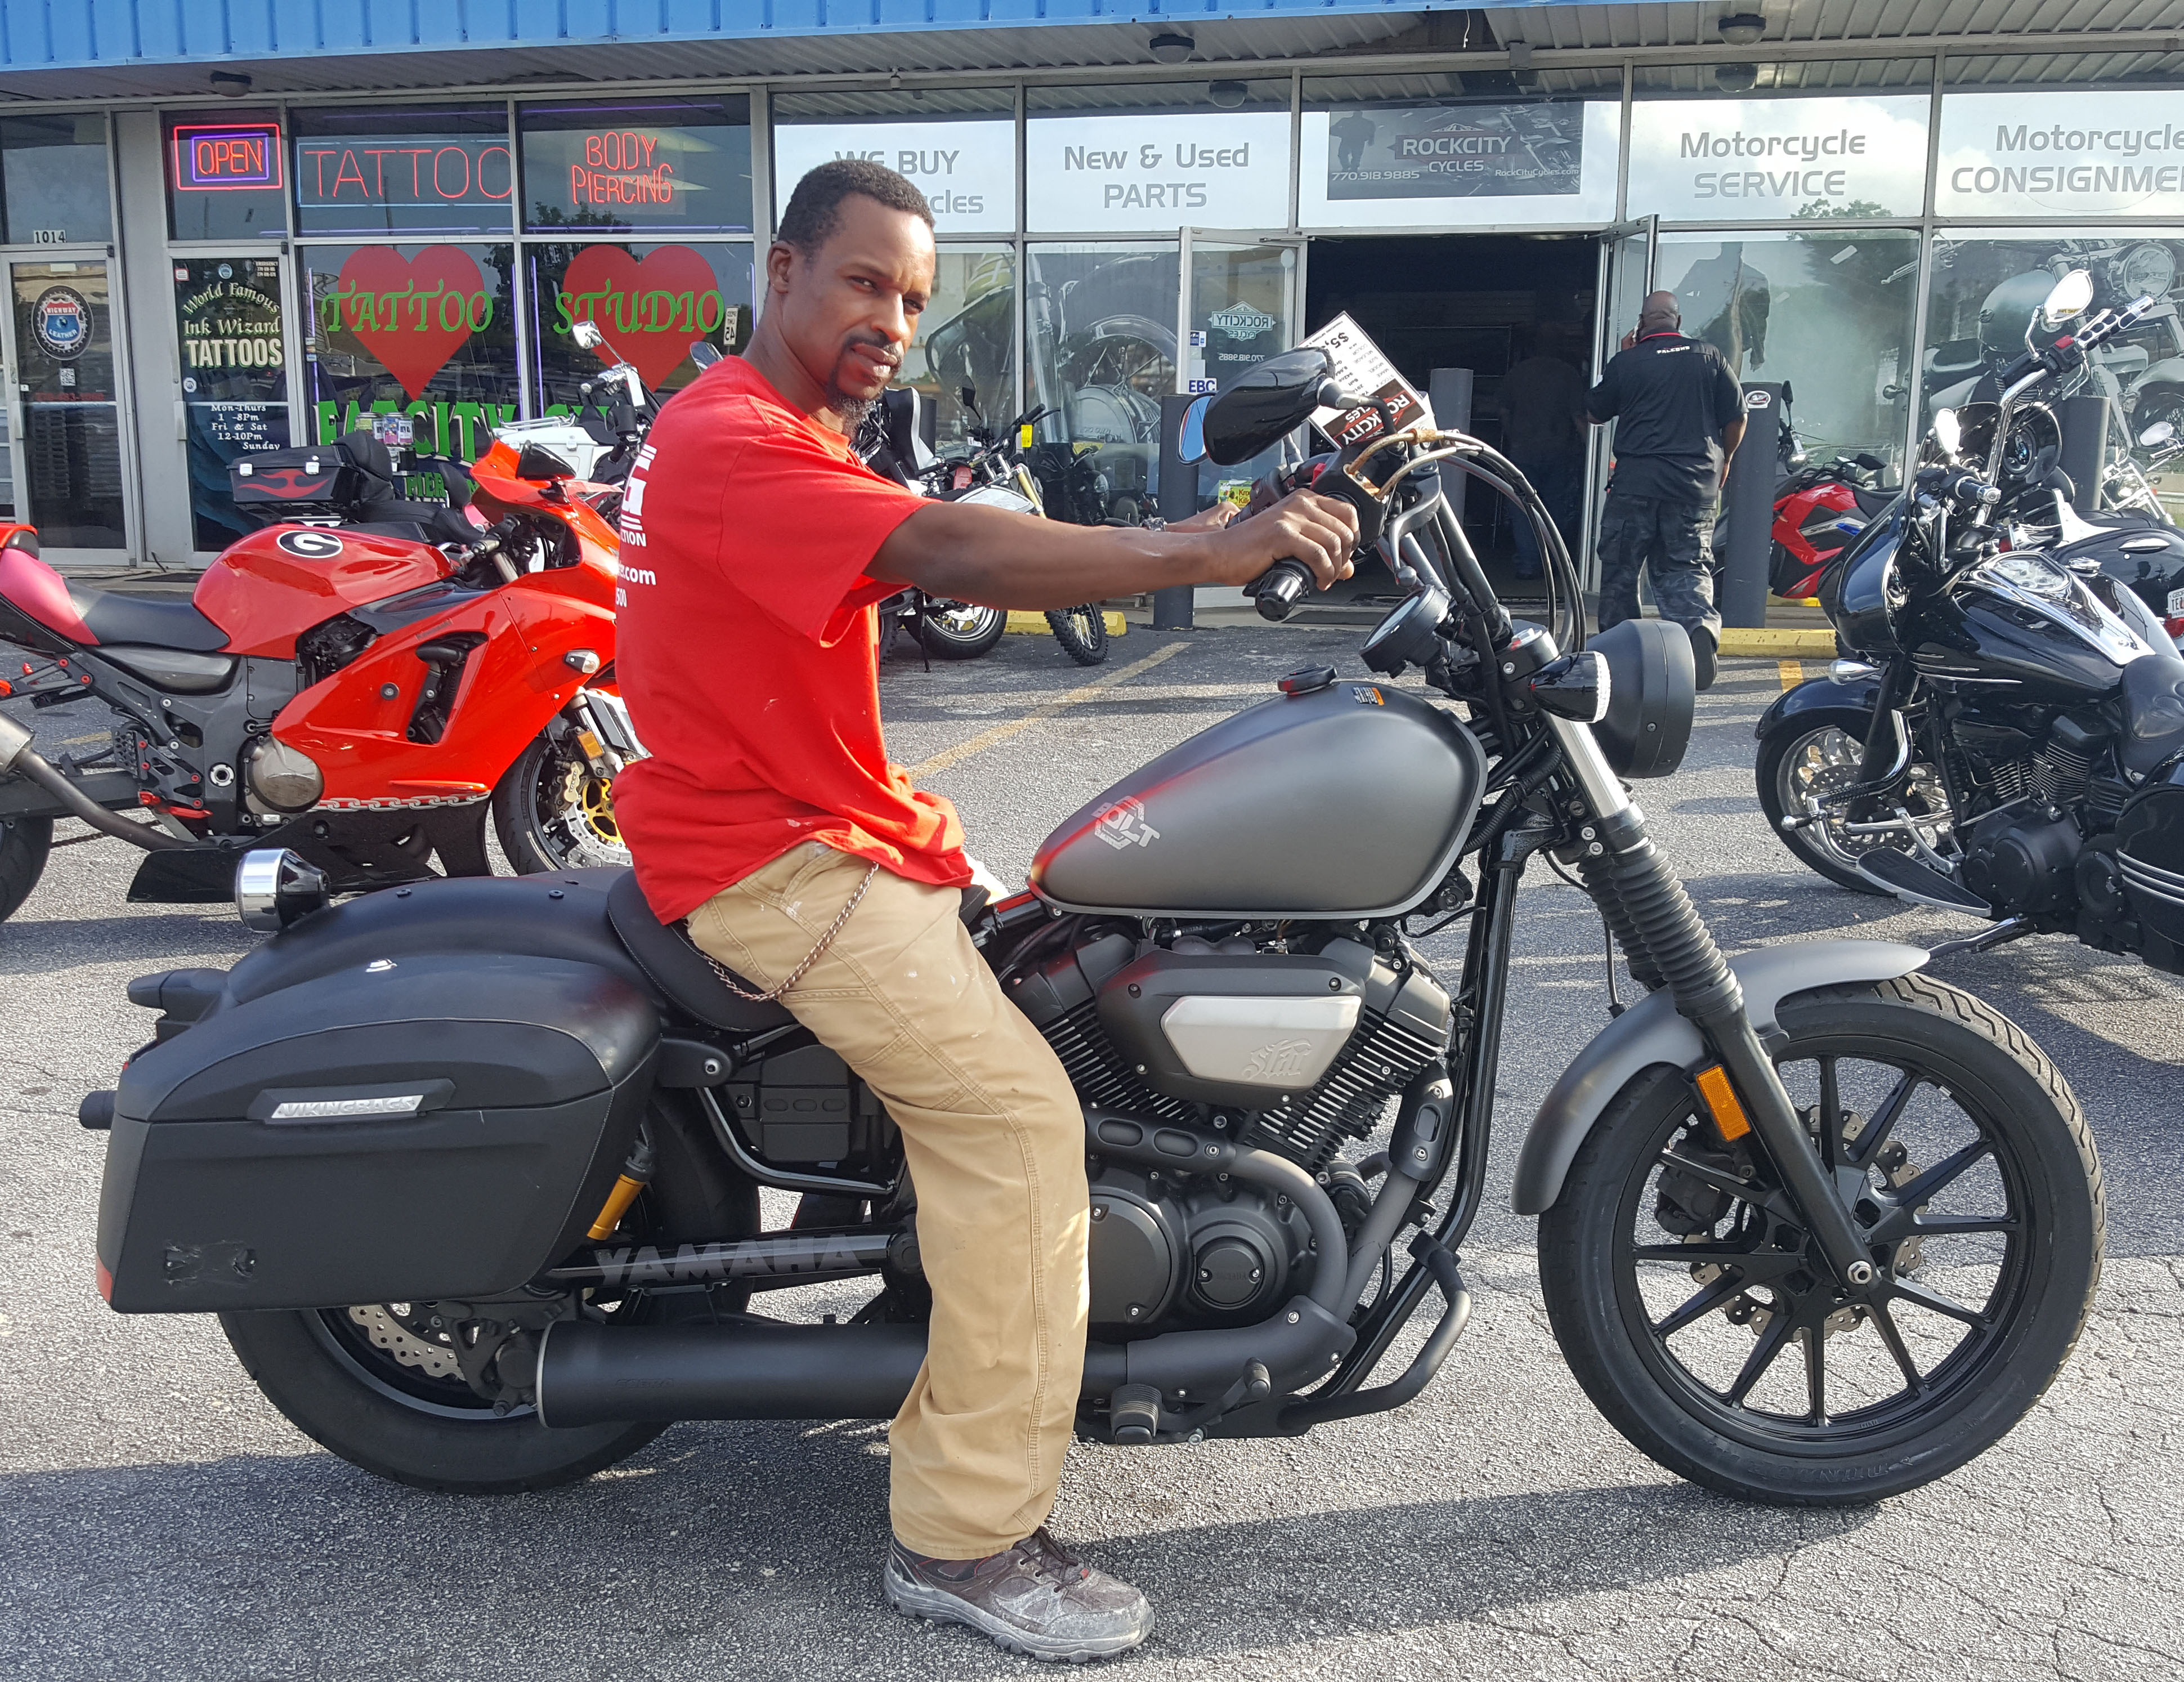 Danny P. with his 2014 Yamaha Bolt